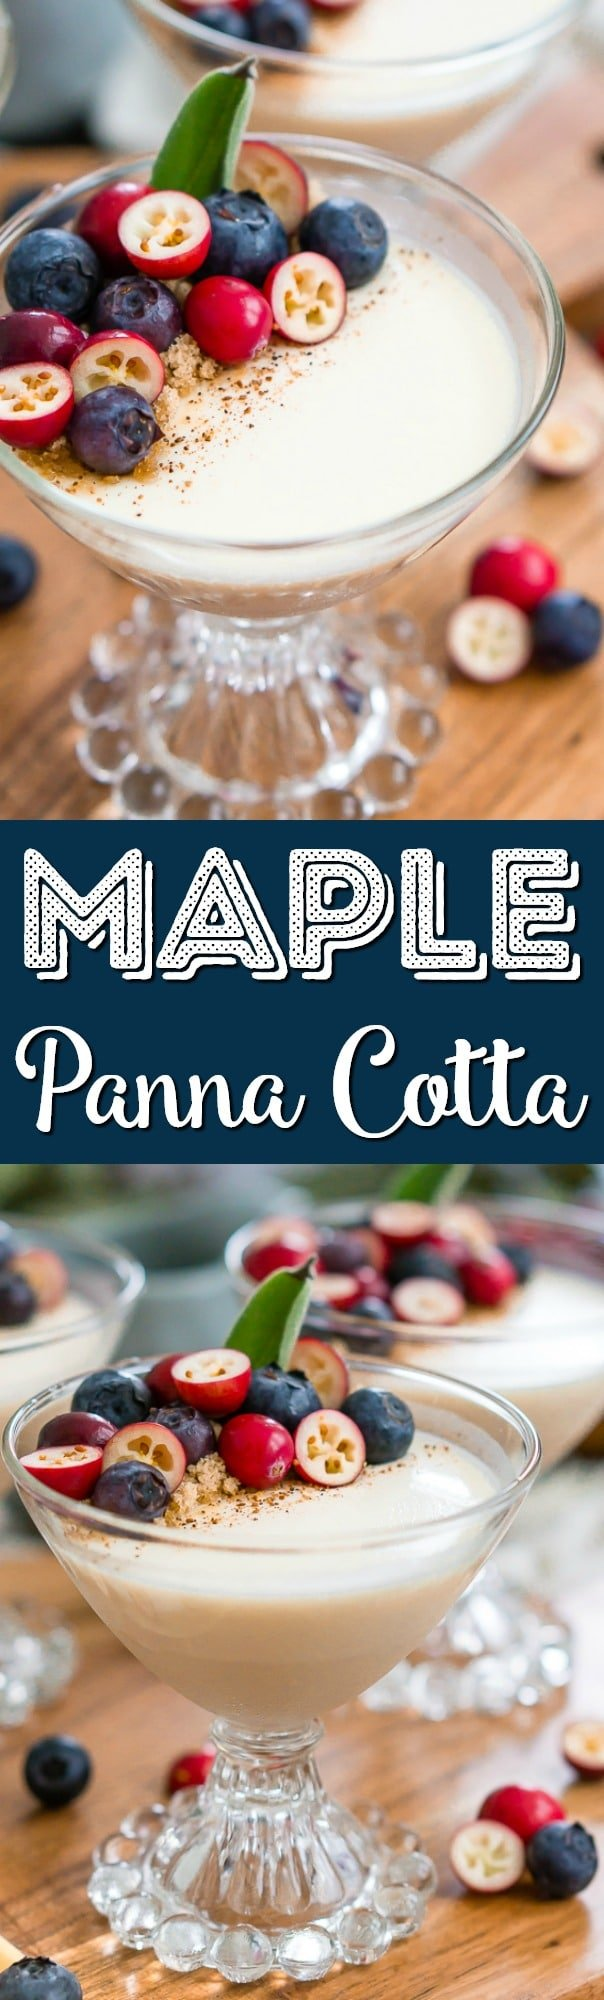 This Maple Panna Cotta is a light and creamy fall dessert that's simple to make and impressive to serve holiday dinner guests! via @sugarandsoulco